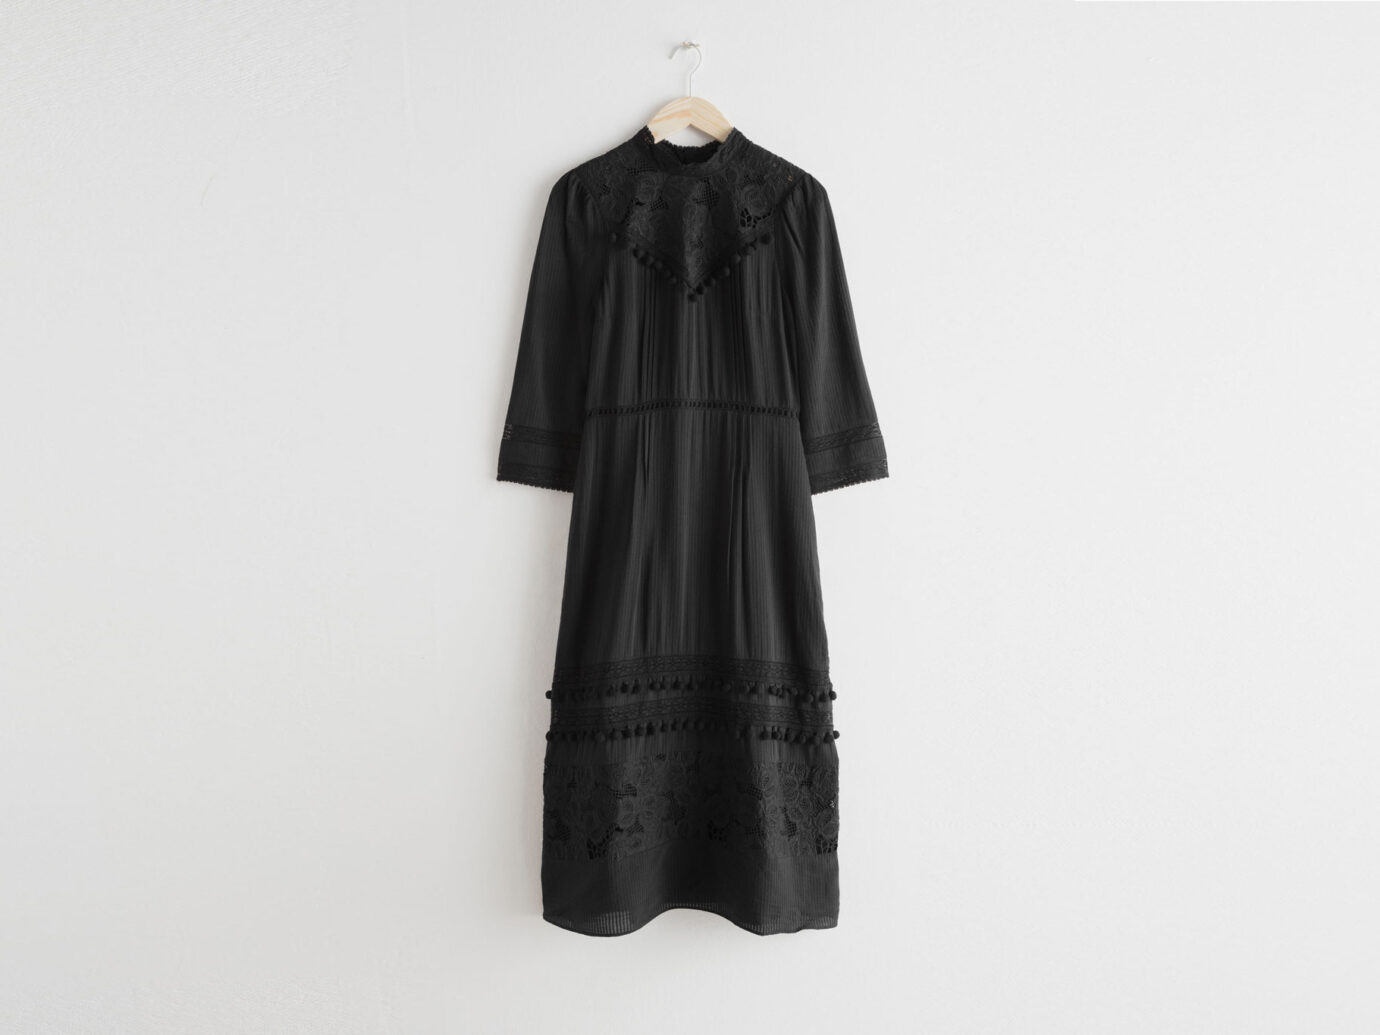 & Other Stories Lace Midi Dress